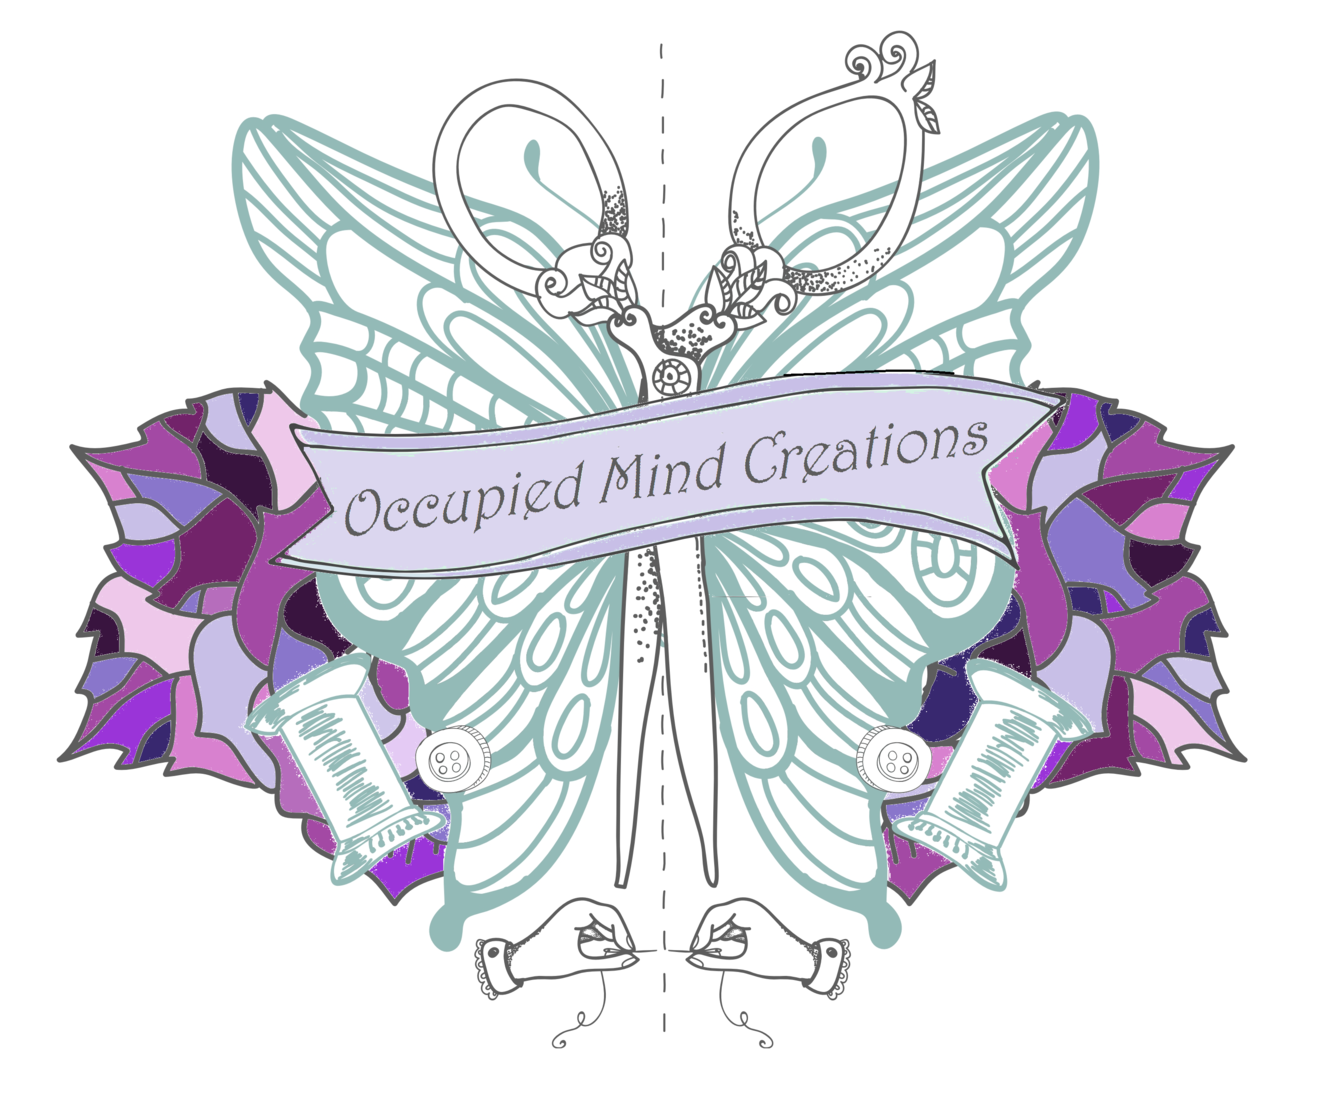 Occupied Mind Creations